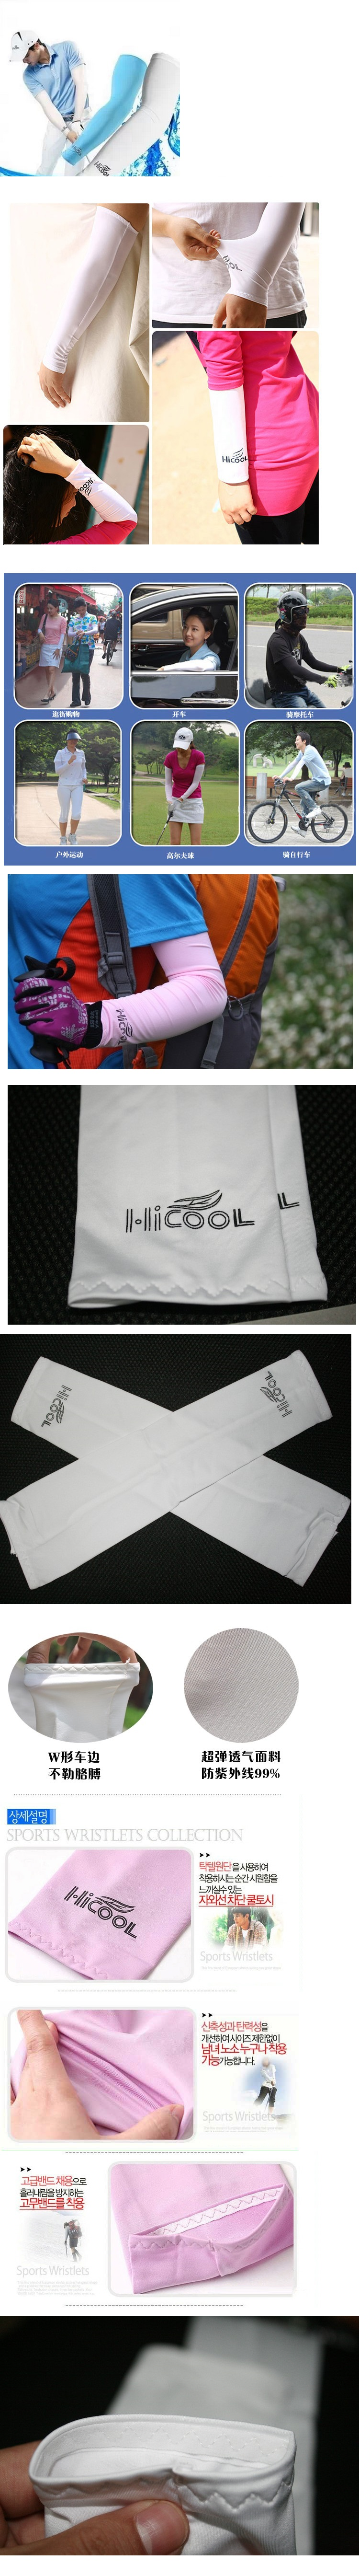 HICOOL UV Protection Elastic Arm Sleeves SHORT BLACK